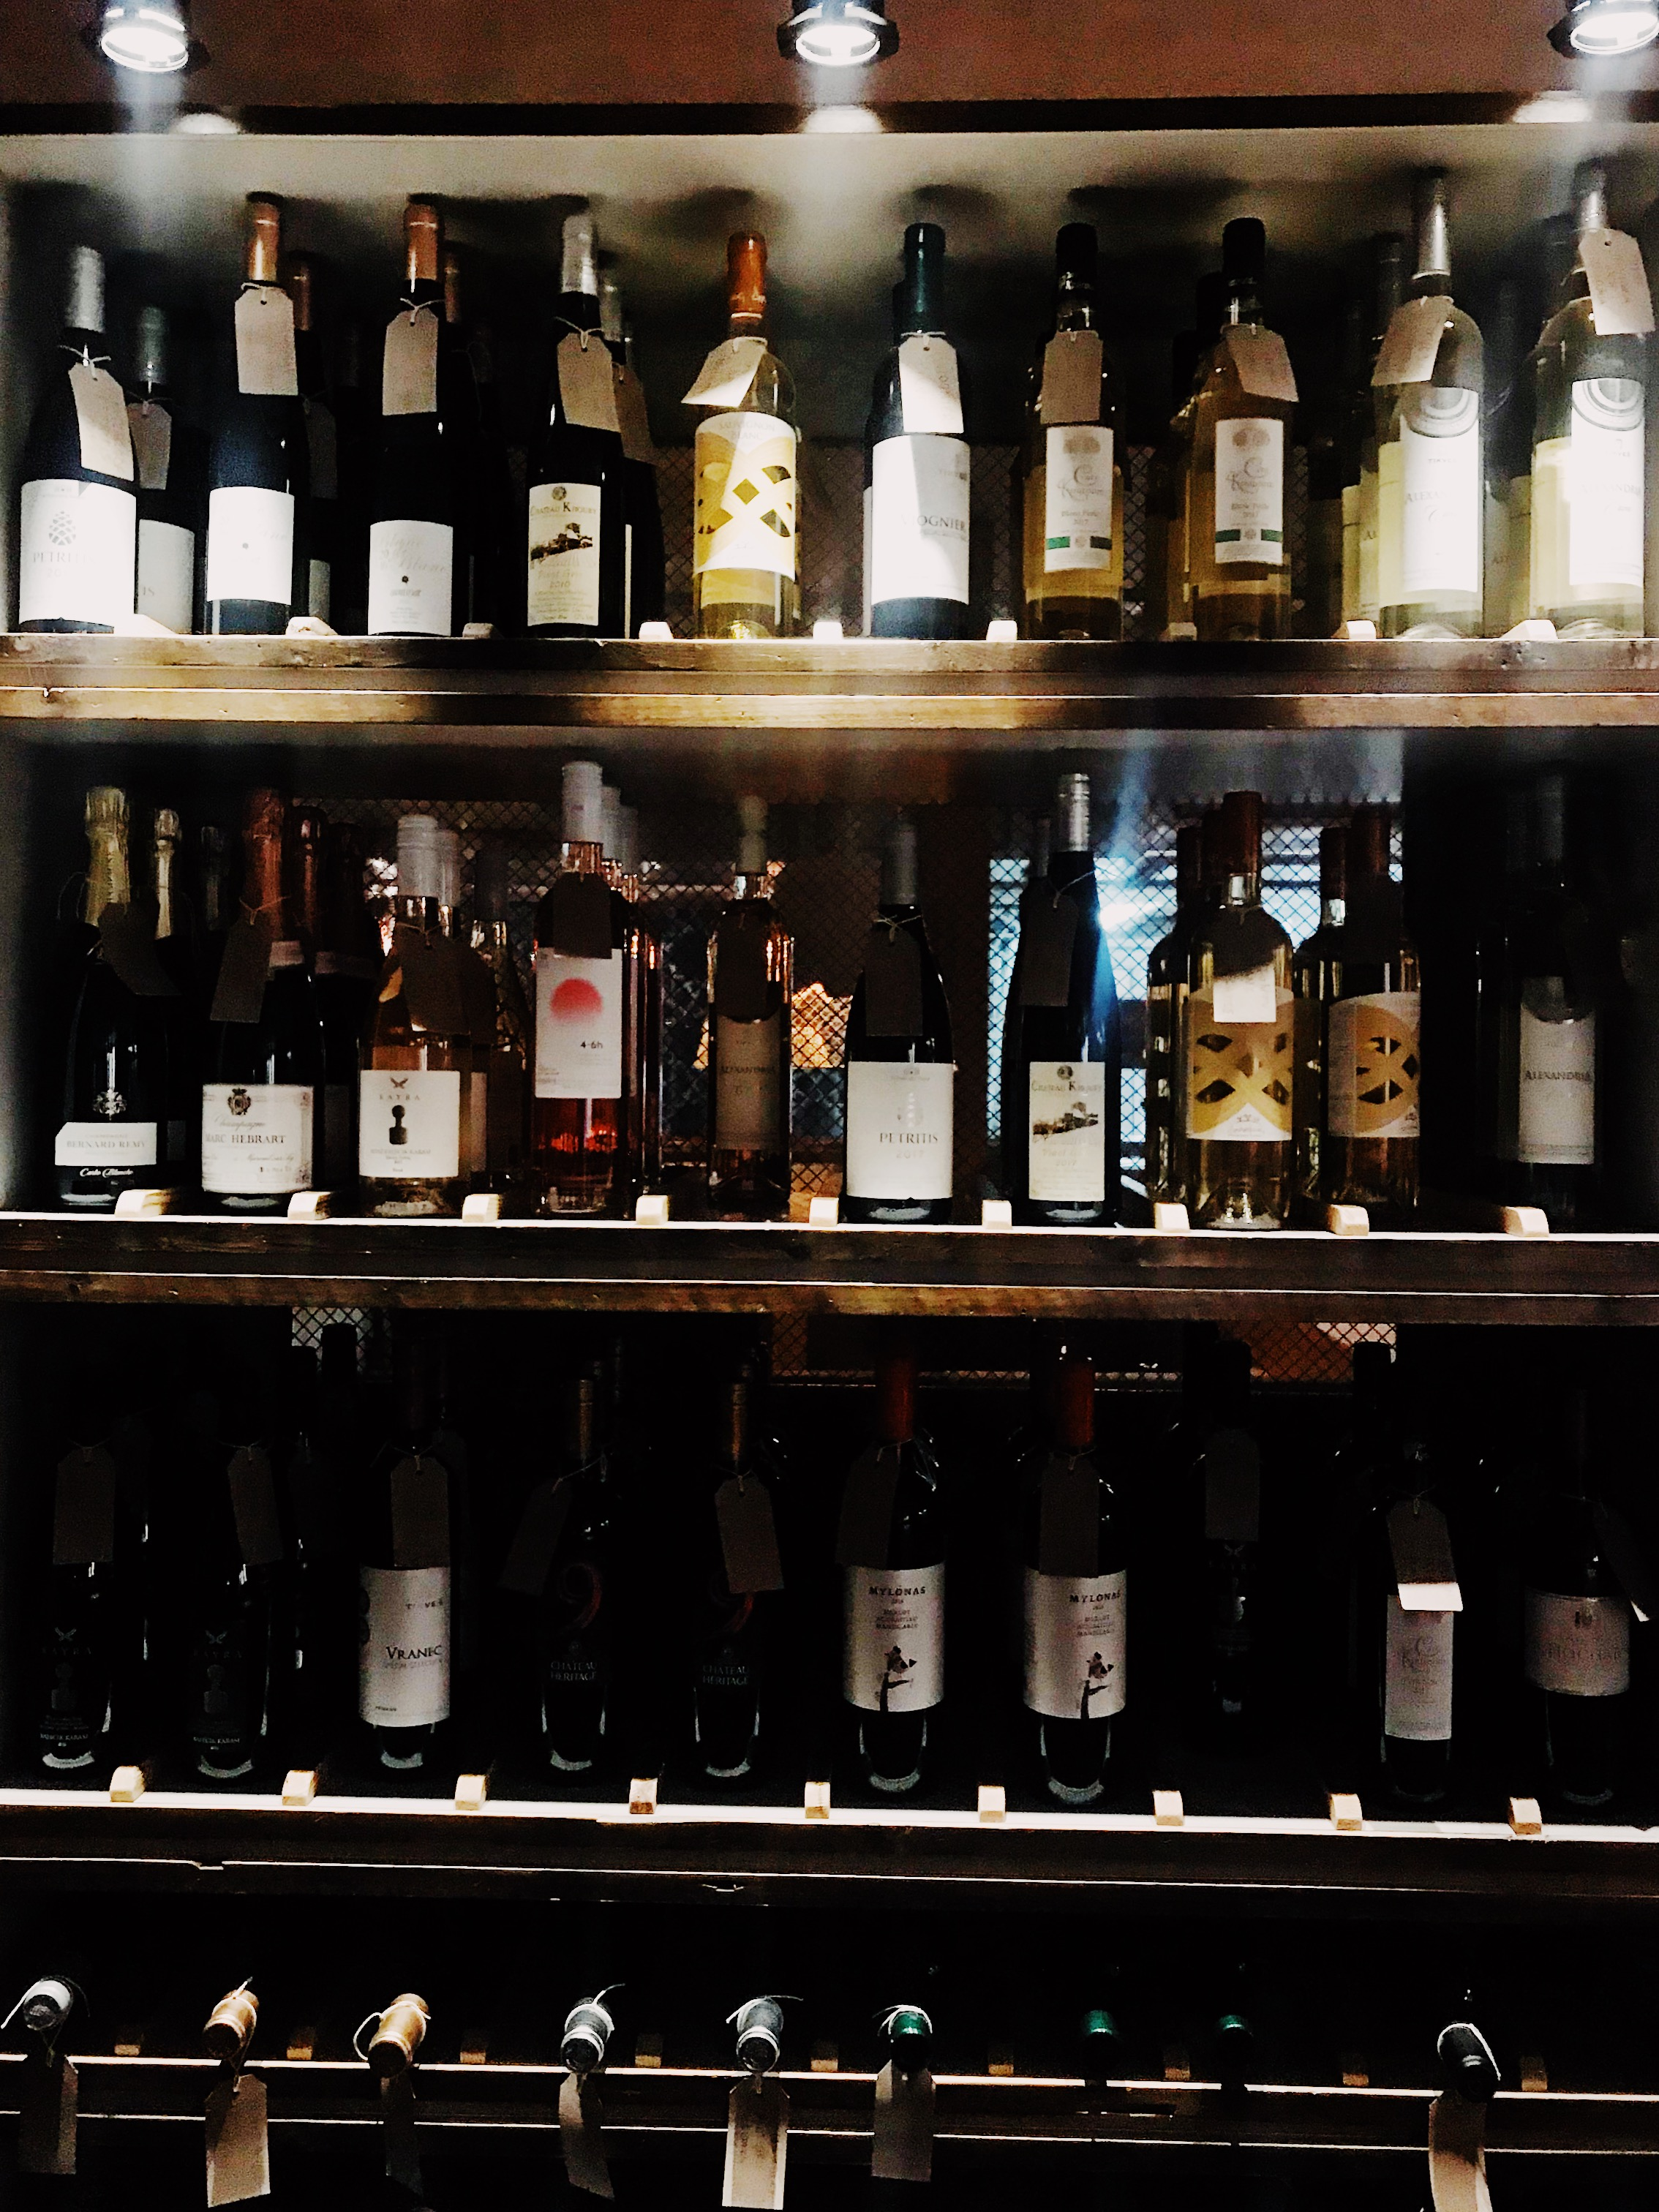 From Cyprus to Lebanon, CERU's fantastic wine selection means you can get the perfect glass of vino to compliment the Levantine flavours of your chosen dishes.